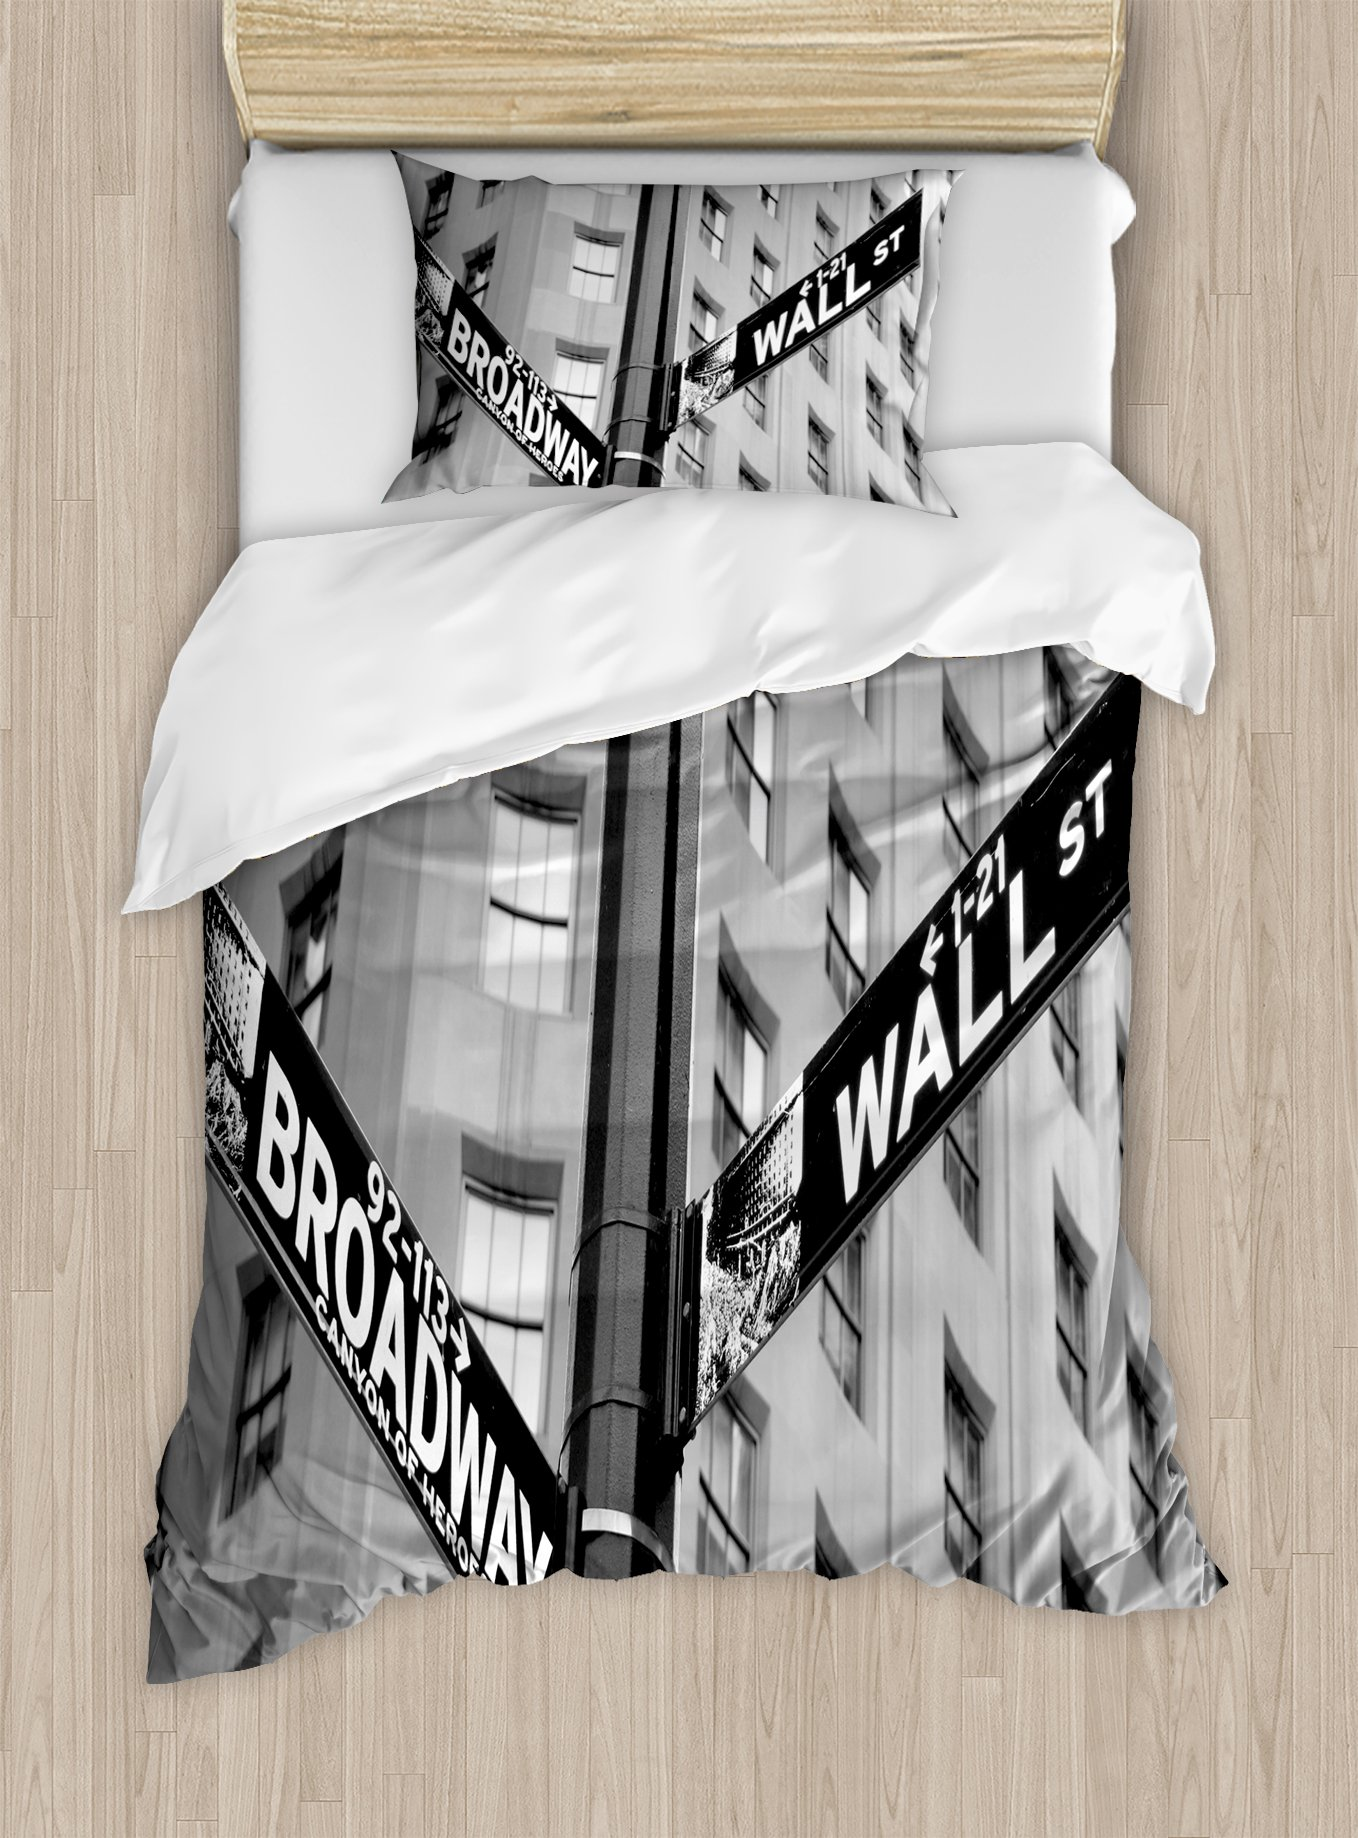 Ambesonne New York Duvet Cover Set Twin Size, Street Signs of intersection of Wall Street and Broadway Finance Destinations, Decorative 2 Piece Bedding Set with 1 Pillow Sham, Black and White